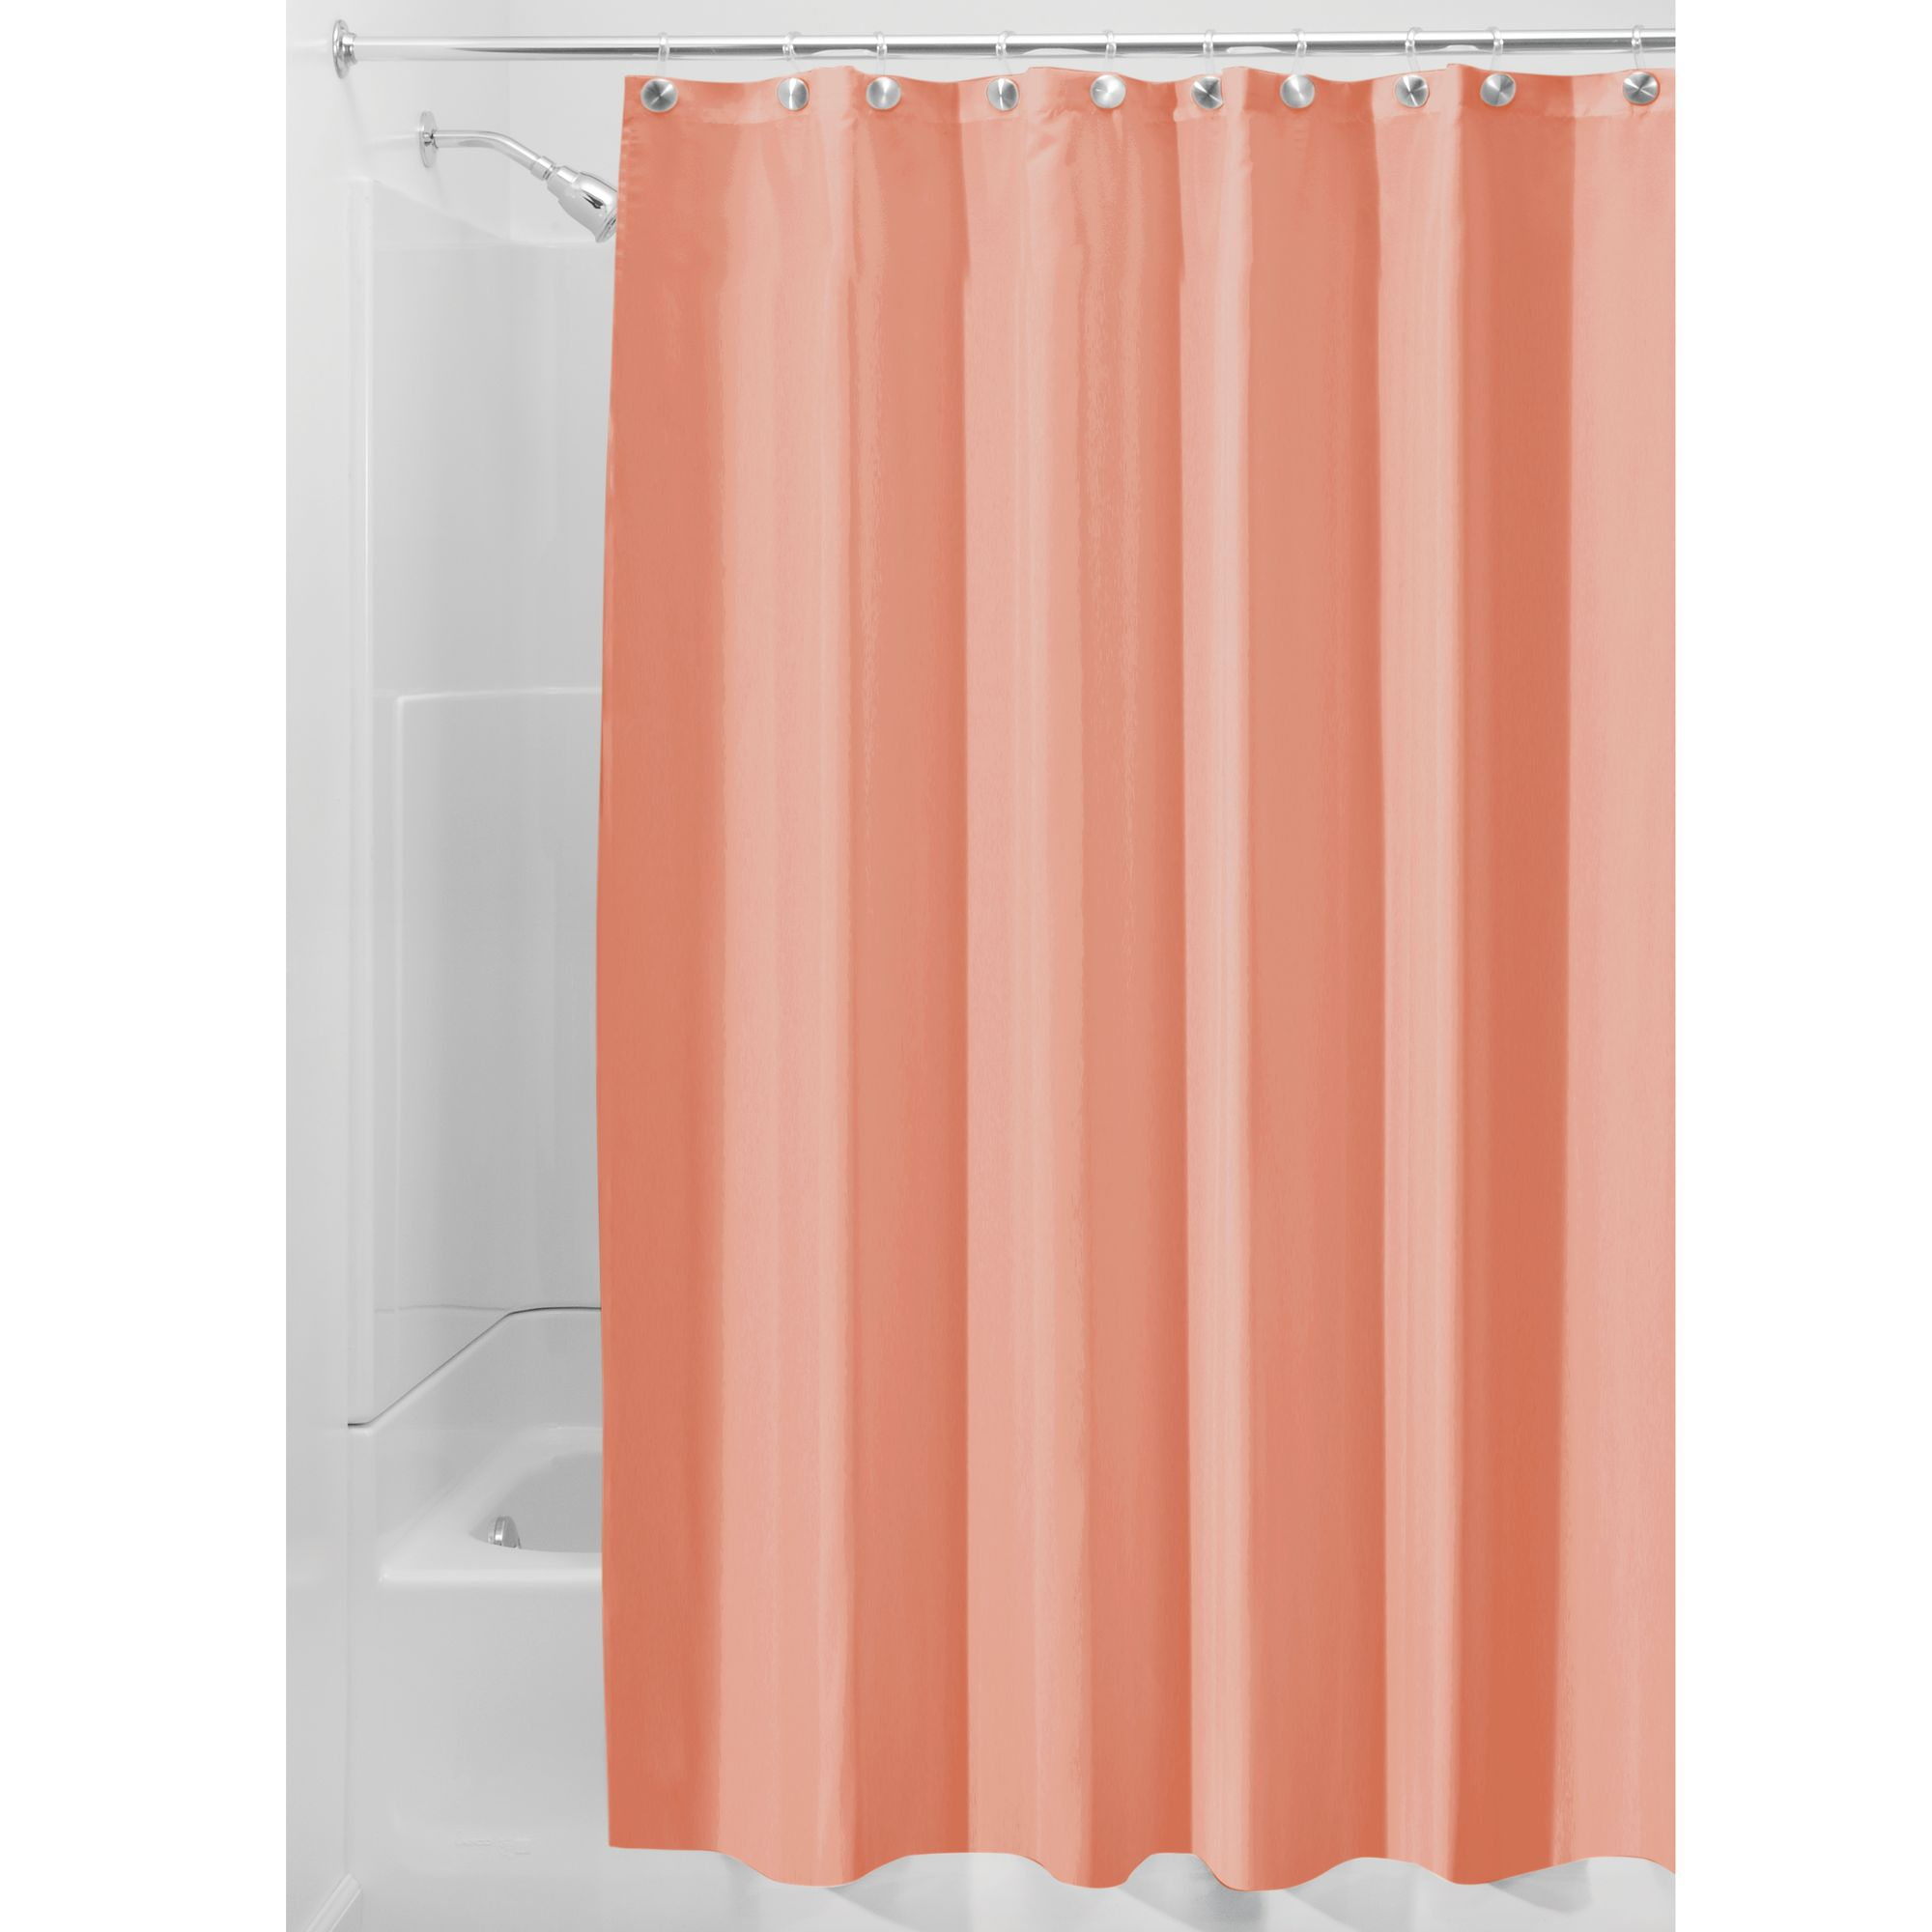 Interdesign Waterproof Fabric Shower Curtain Liner Standard 72 X 72 Coral Walmart Com Walmart Com